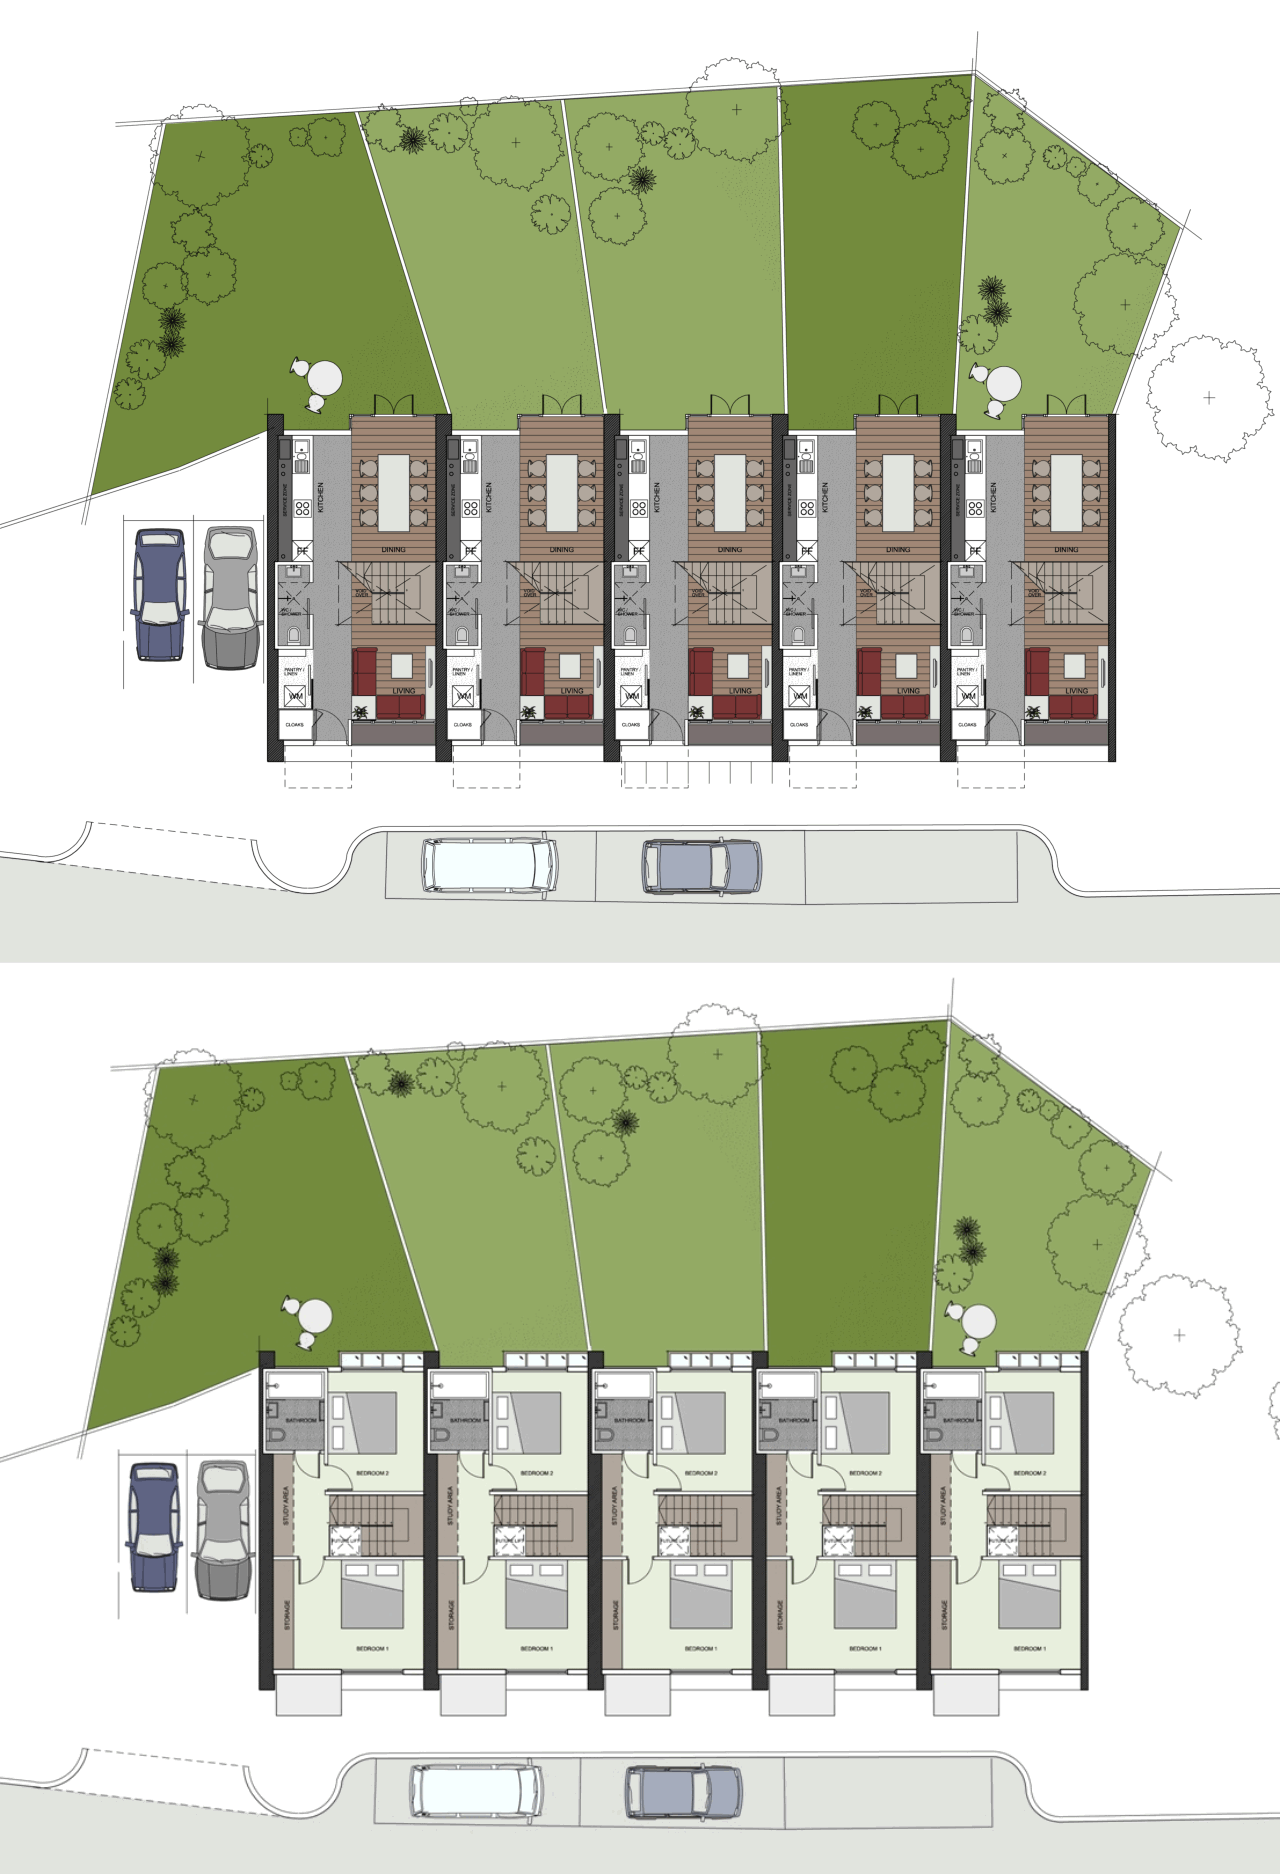 Sixtyk sheppard robson terraced house floor plans large for Small house design with terrace